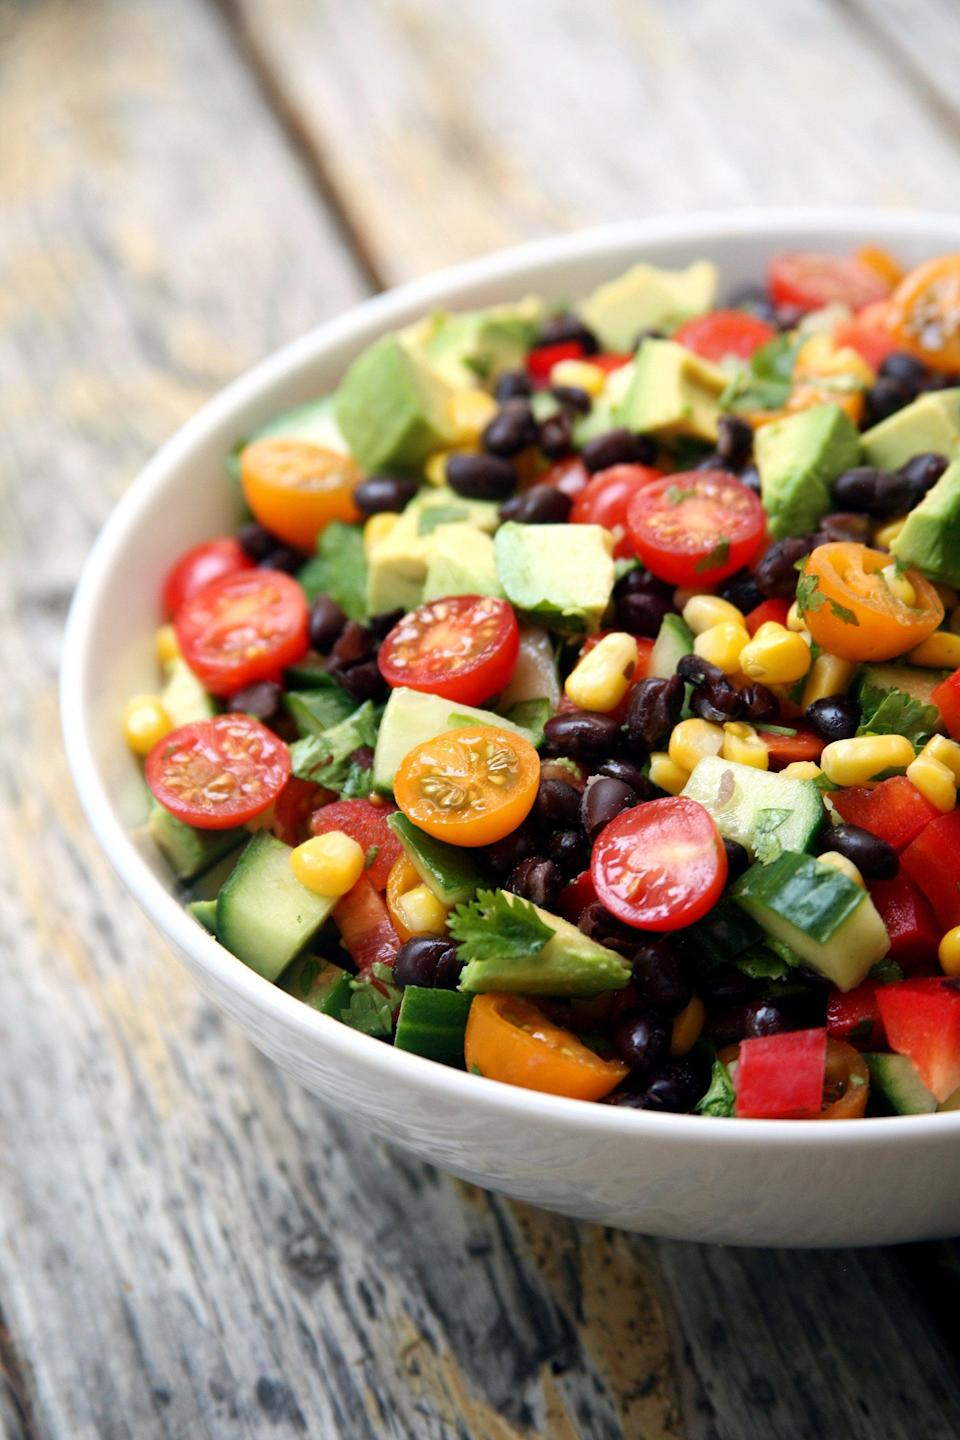 """<p>Crafted with simple ingredients, this quick, refreshing, hydrating salad combines the flavors of black beans, cucumbers, tomatoes, lime juice, and cilantro. We don't blame you if you want to eat this salad every single day - it's that good.</p> <p><strong>Get the recipe:</strong> <a href=""""https://www.popsugar.com/fitness/Cucumber-Black-Bean-Corn-Tomato-Avocado-Salad-37842951"""" class=""""link rapid-noclick-resp"""" rel=""""nofollow noopener"""" target=""""_blank"""" data-ylk=""""slk:cucumber, black bean, corn, tomato, and avocado salad"""">cucumber, black bean, corn, tomato, and avocado salad</a></p>"""